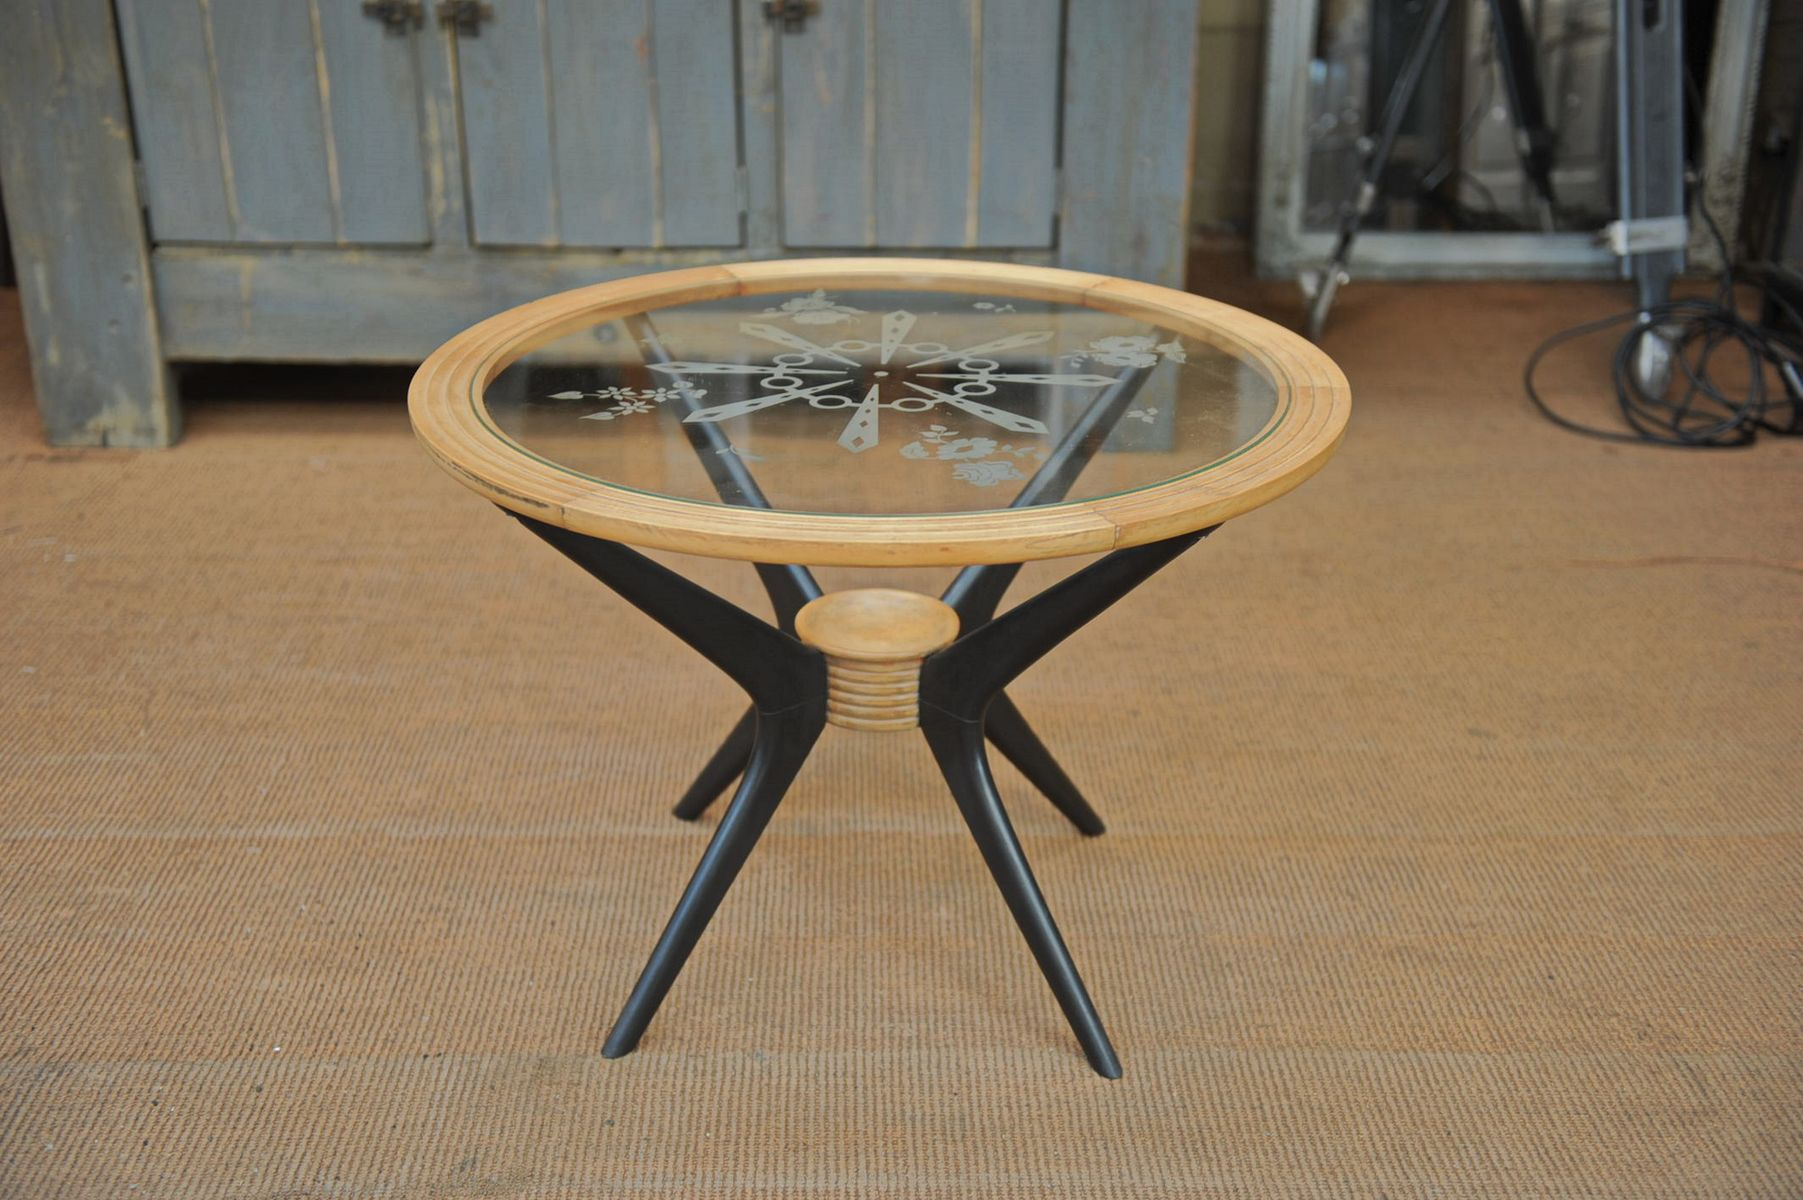 Wooden Coffee Table with Etched Glass Top 1950s for sale at Pamono